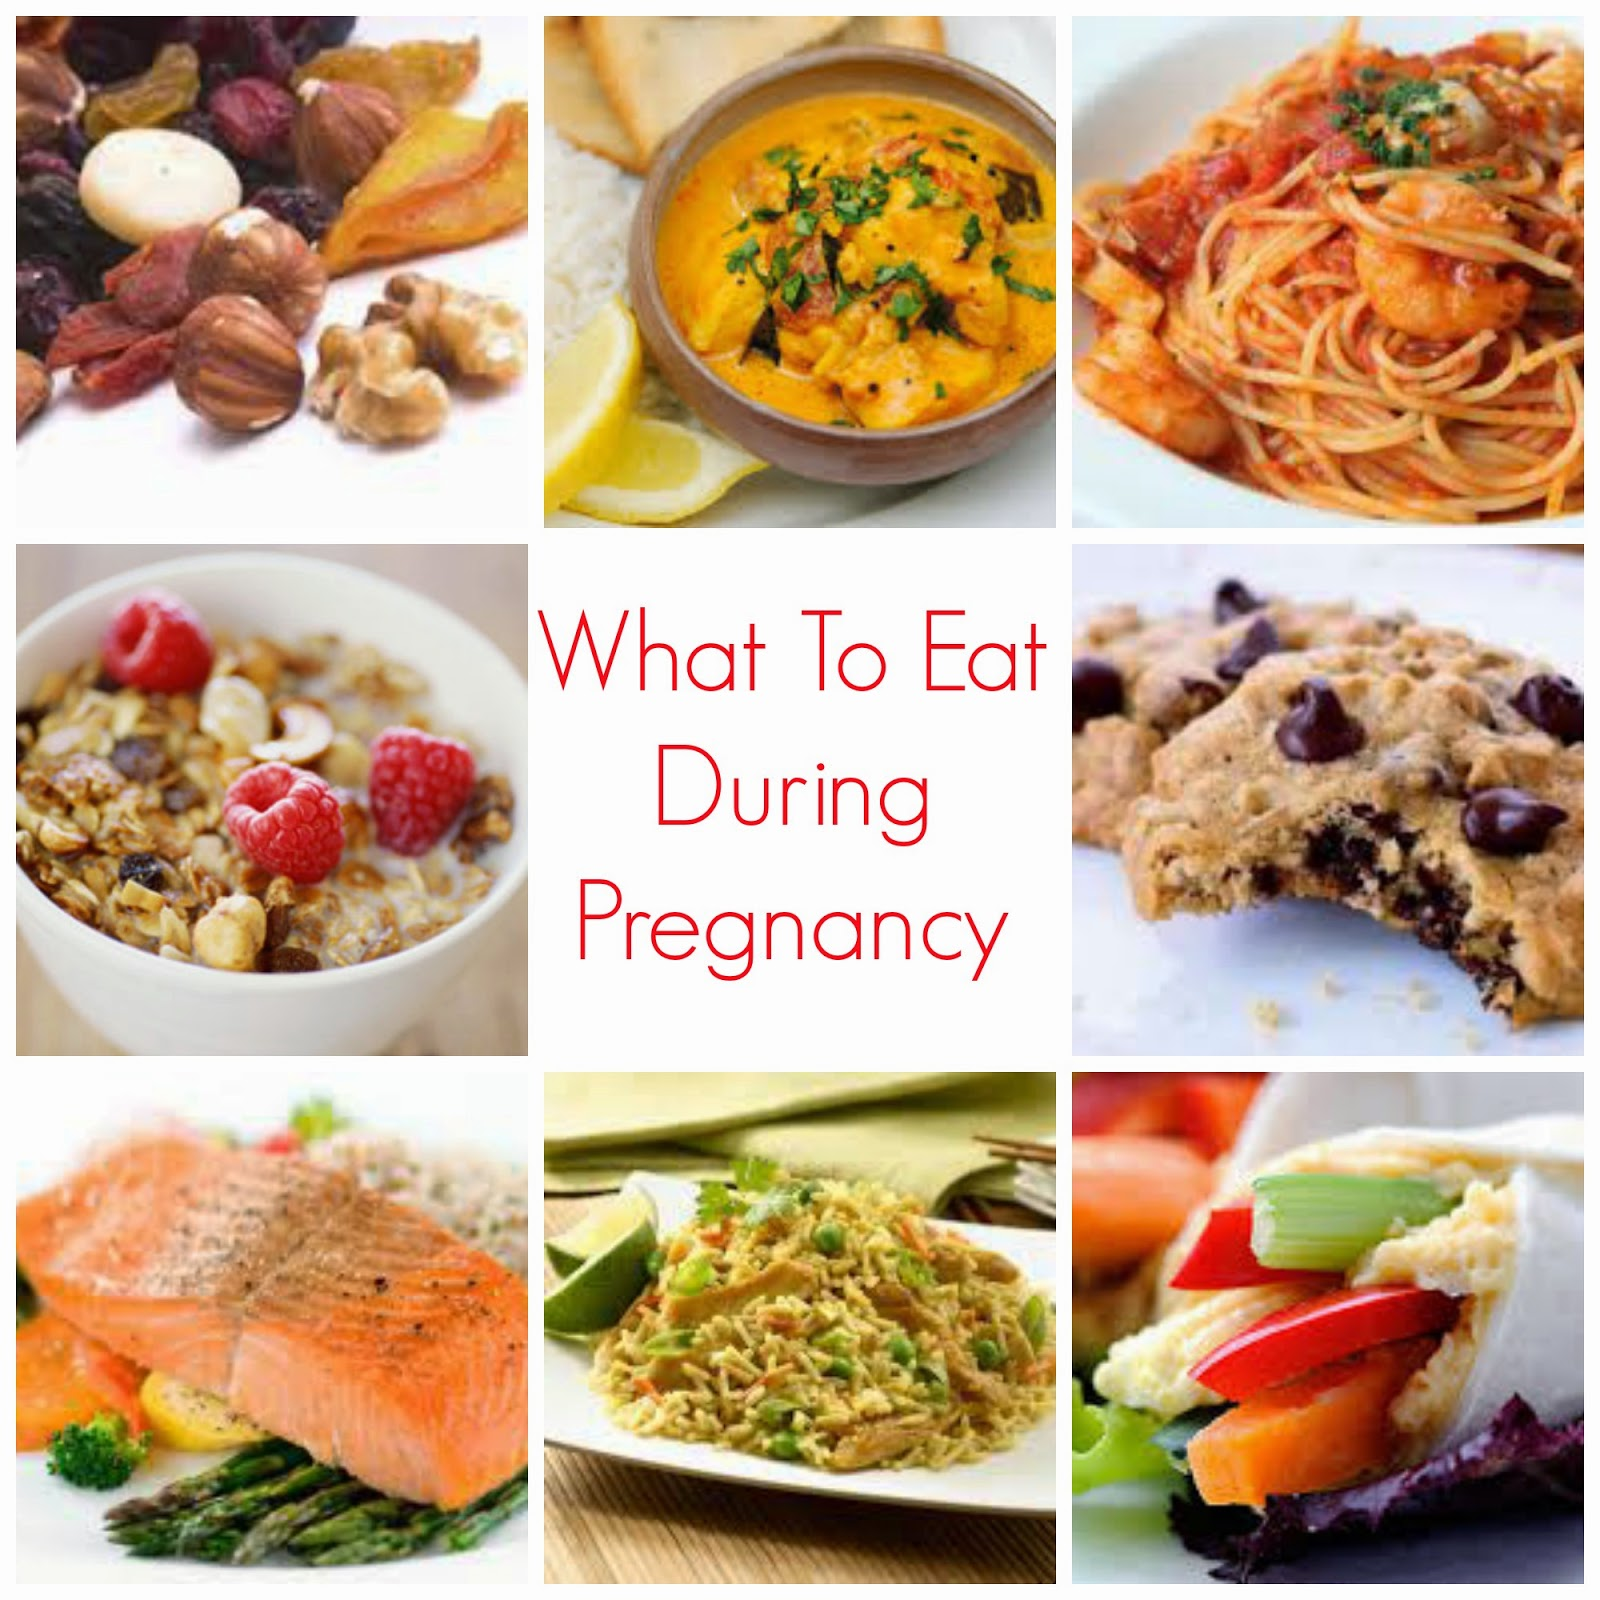 What To Eat When You Are Pregnant? | Eating For A Healthy Pregnancy